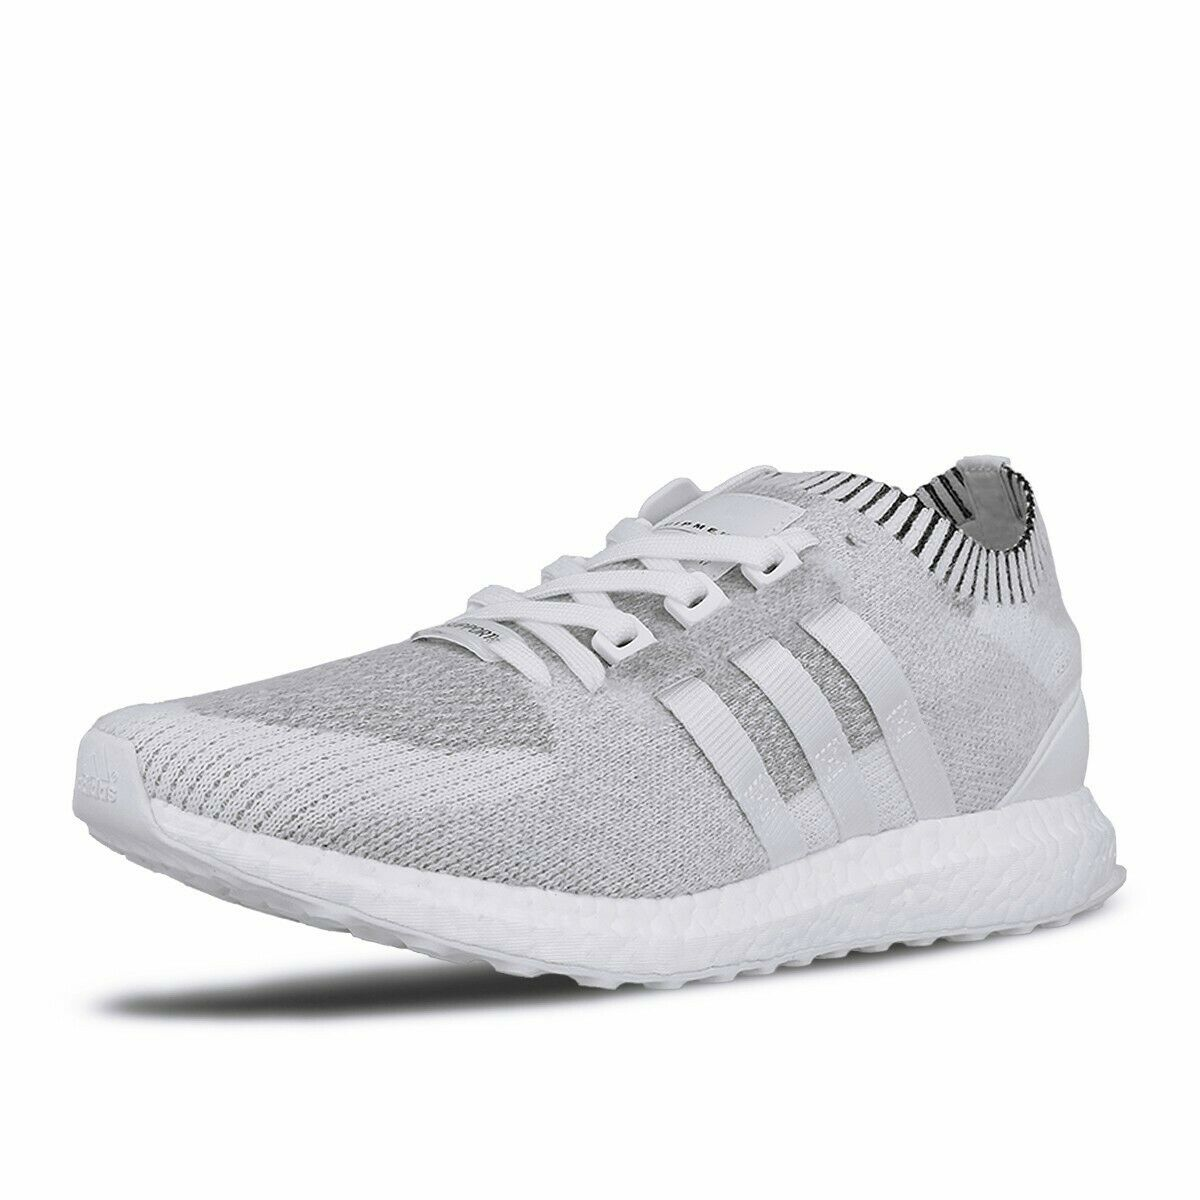 Adidas EQT Support Ultra Primeknit 9.5US 9.5US 9.5US Vintage White BB1242 Mens Running shoes 44b78b